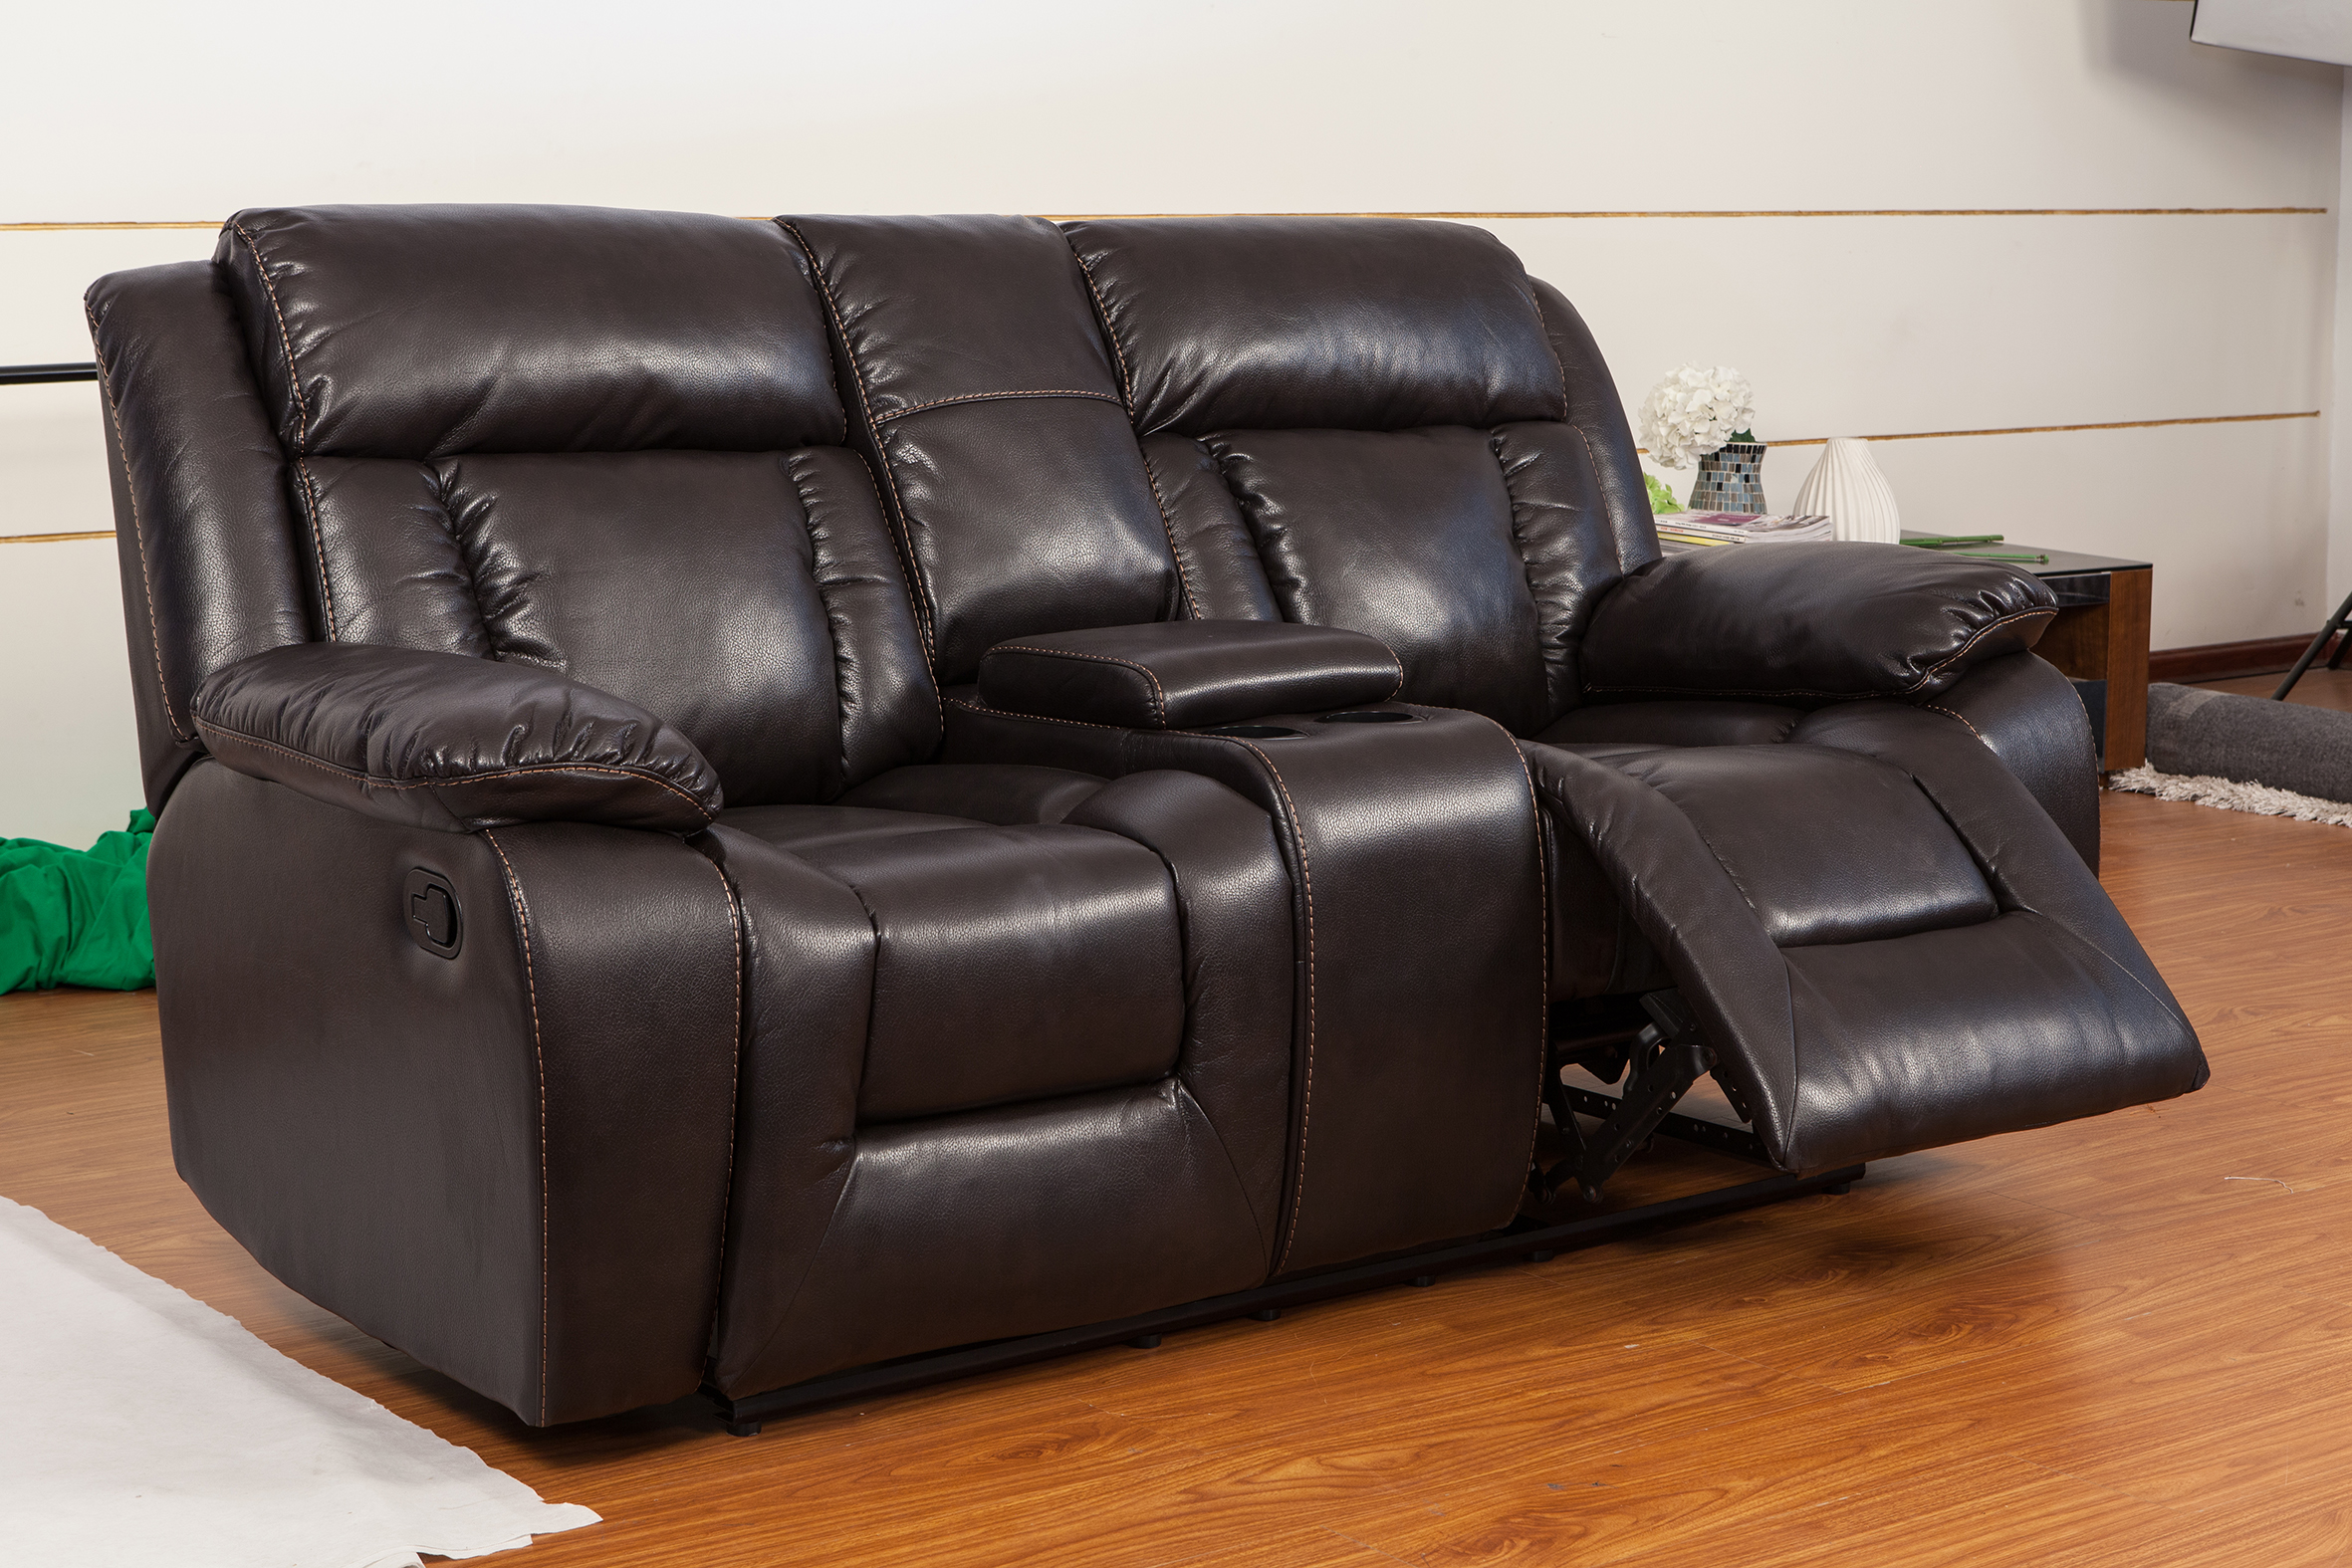 Royal genuine Leather home cinema 2 seater couple recliner sofa